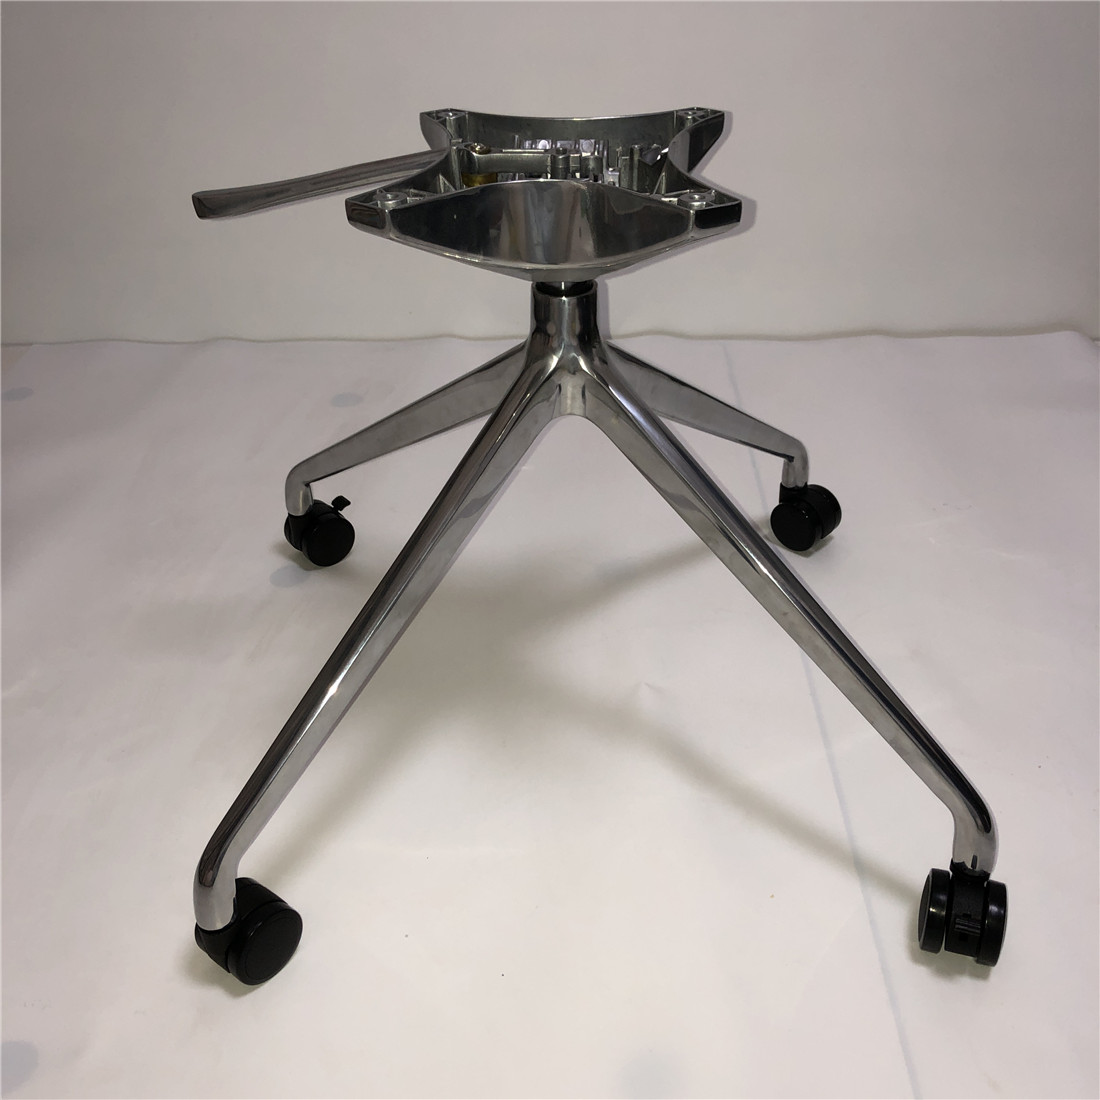 office metal base swivel chair parts manufacturer in China